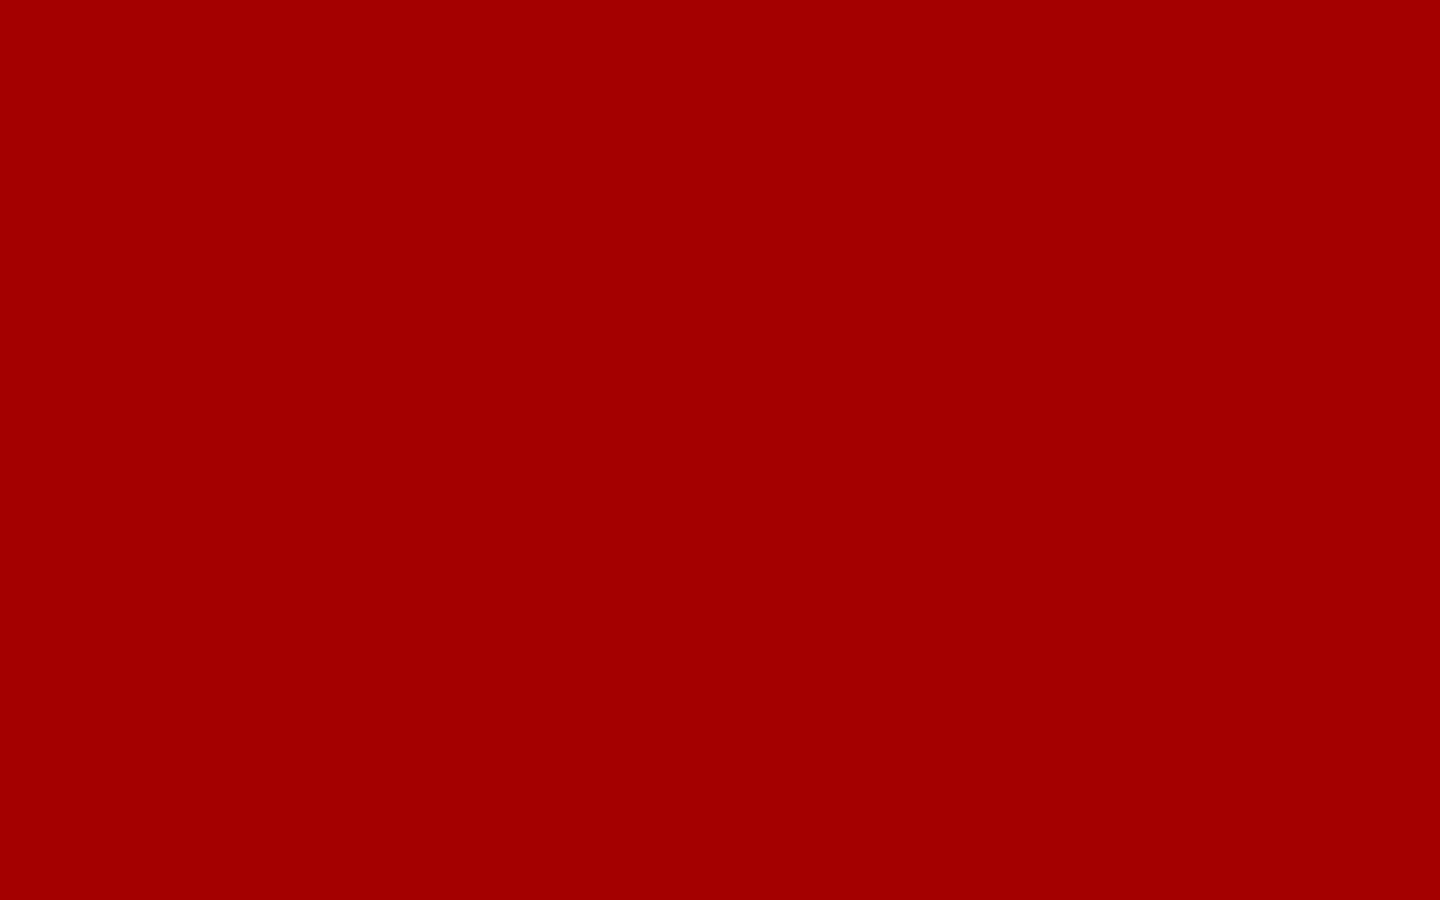 1440x900 Dark Candy Apple Red Solid Color Background